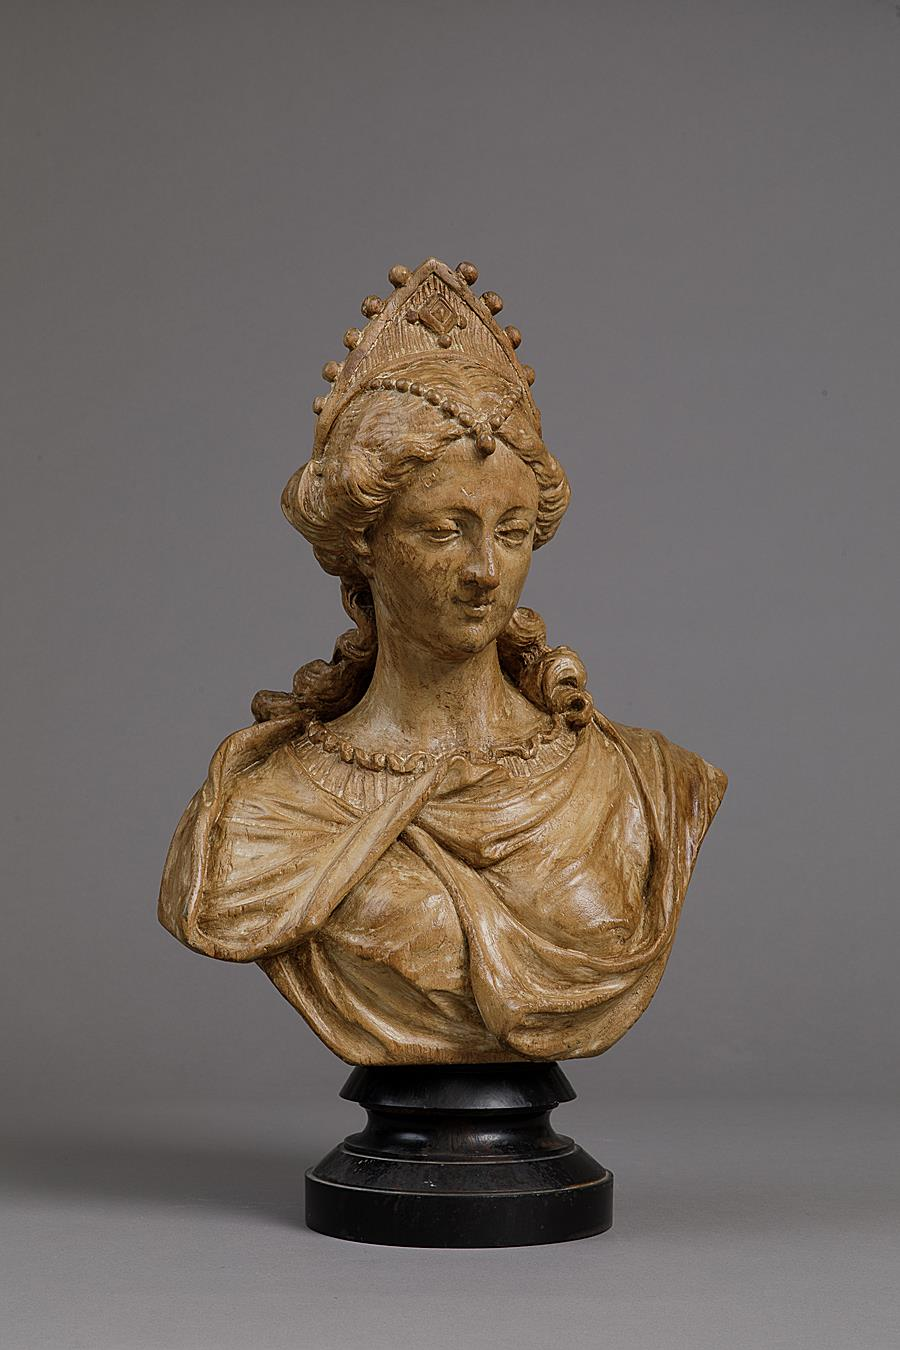 FLEMISH BAROQUE BUST OF A JEWELED LADY